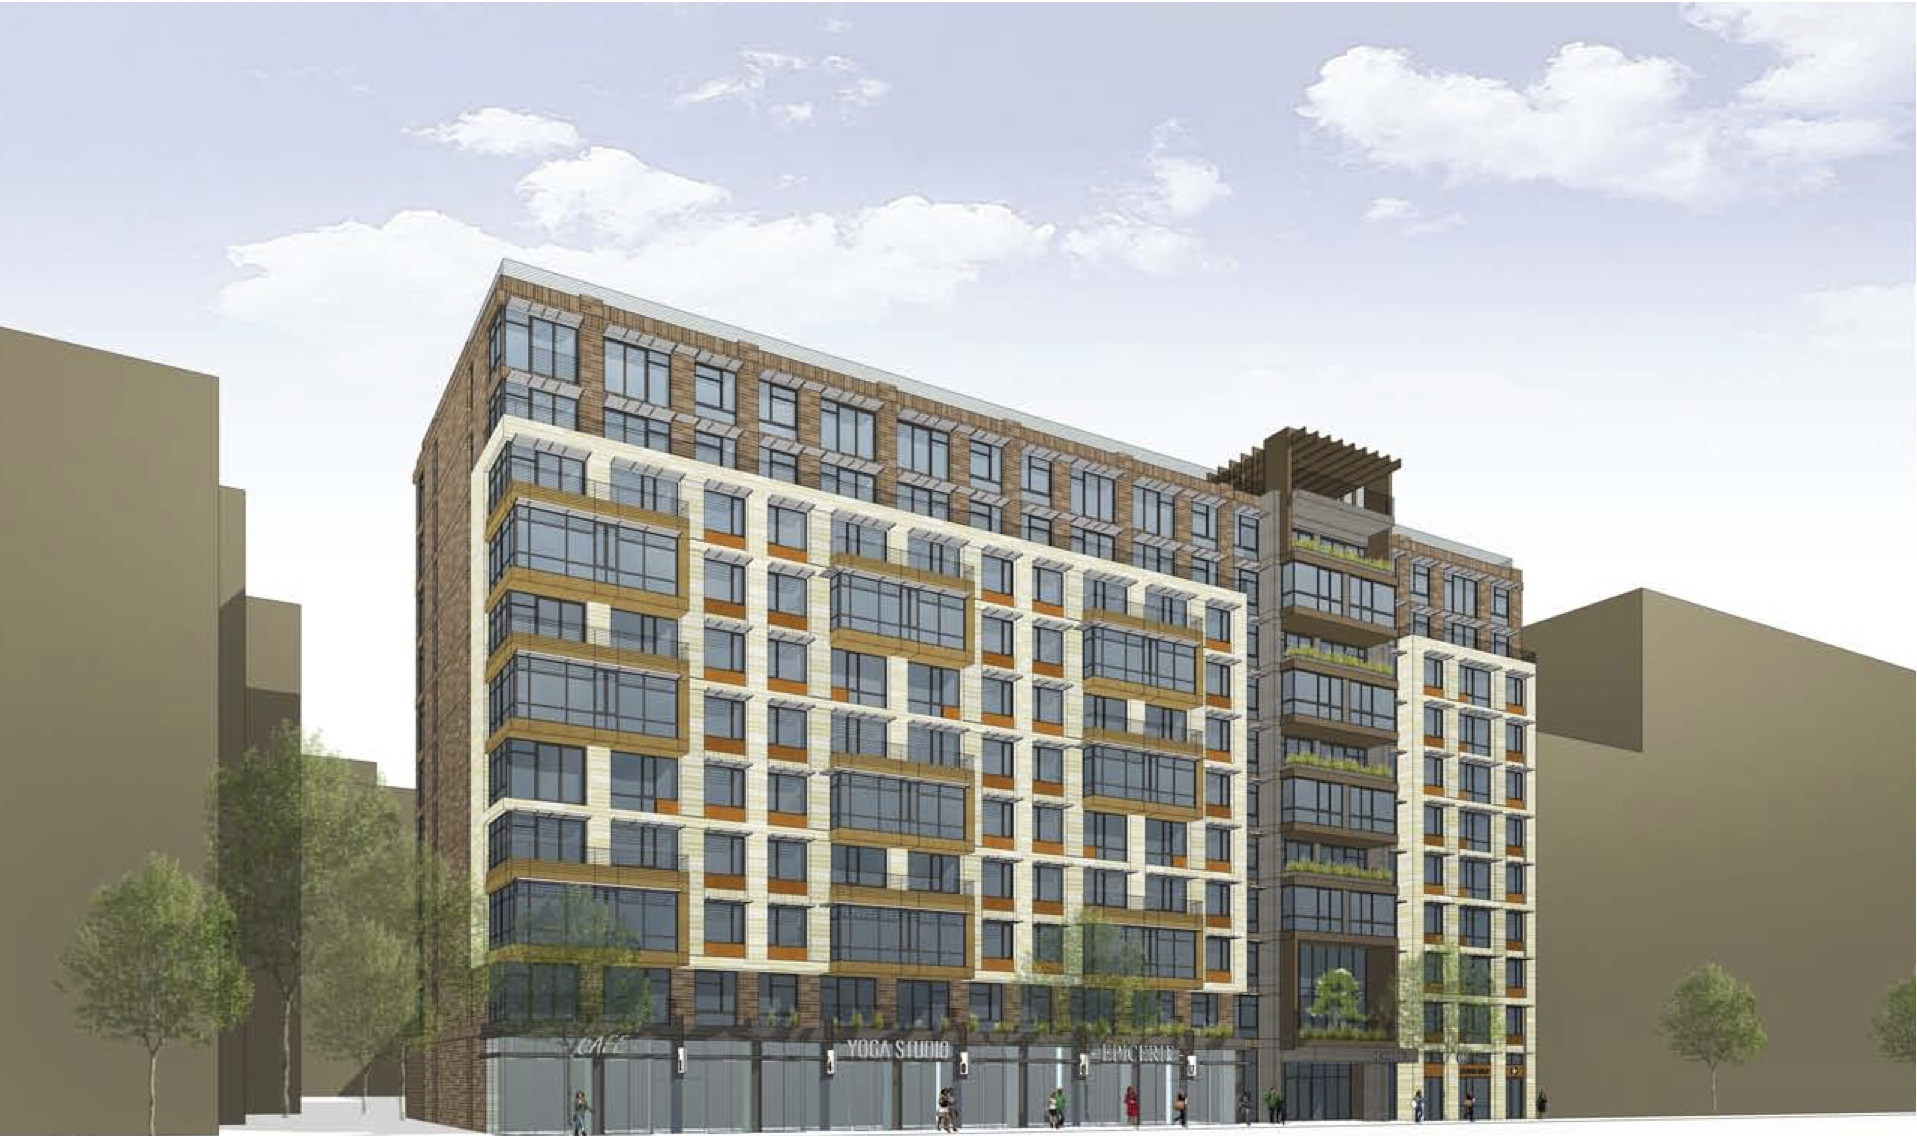 Preliminary plans for redevelopment of portner place for Furniture u street dc